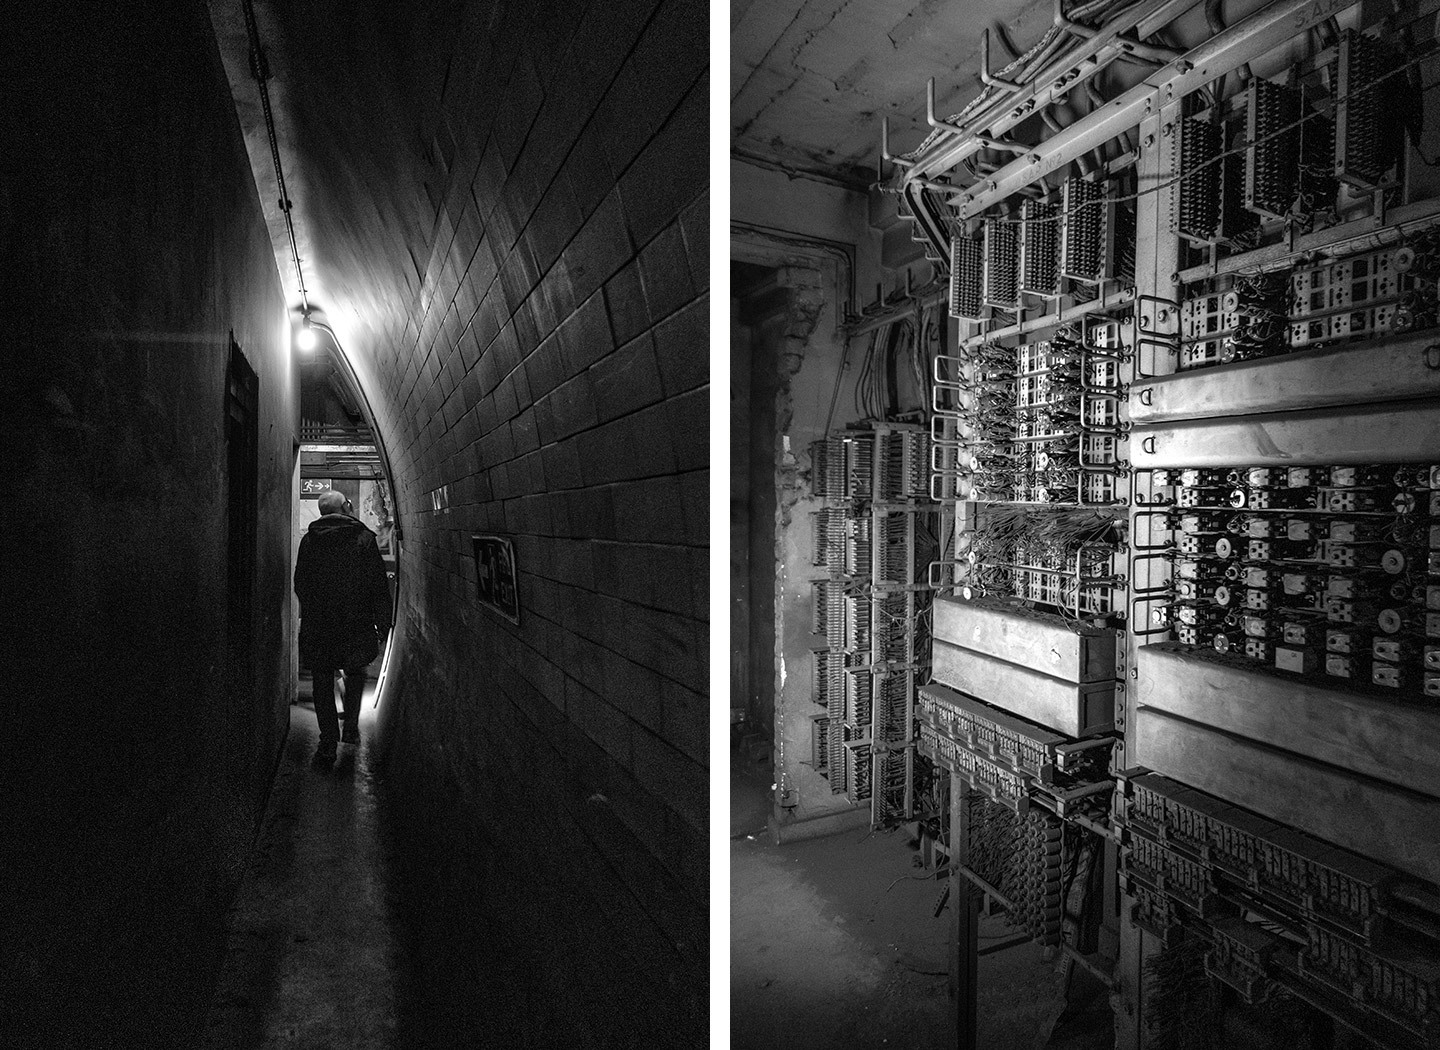 Narrow underground corridors and an old WWII telephone exchange